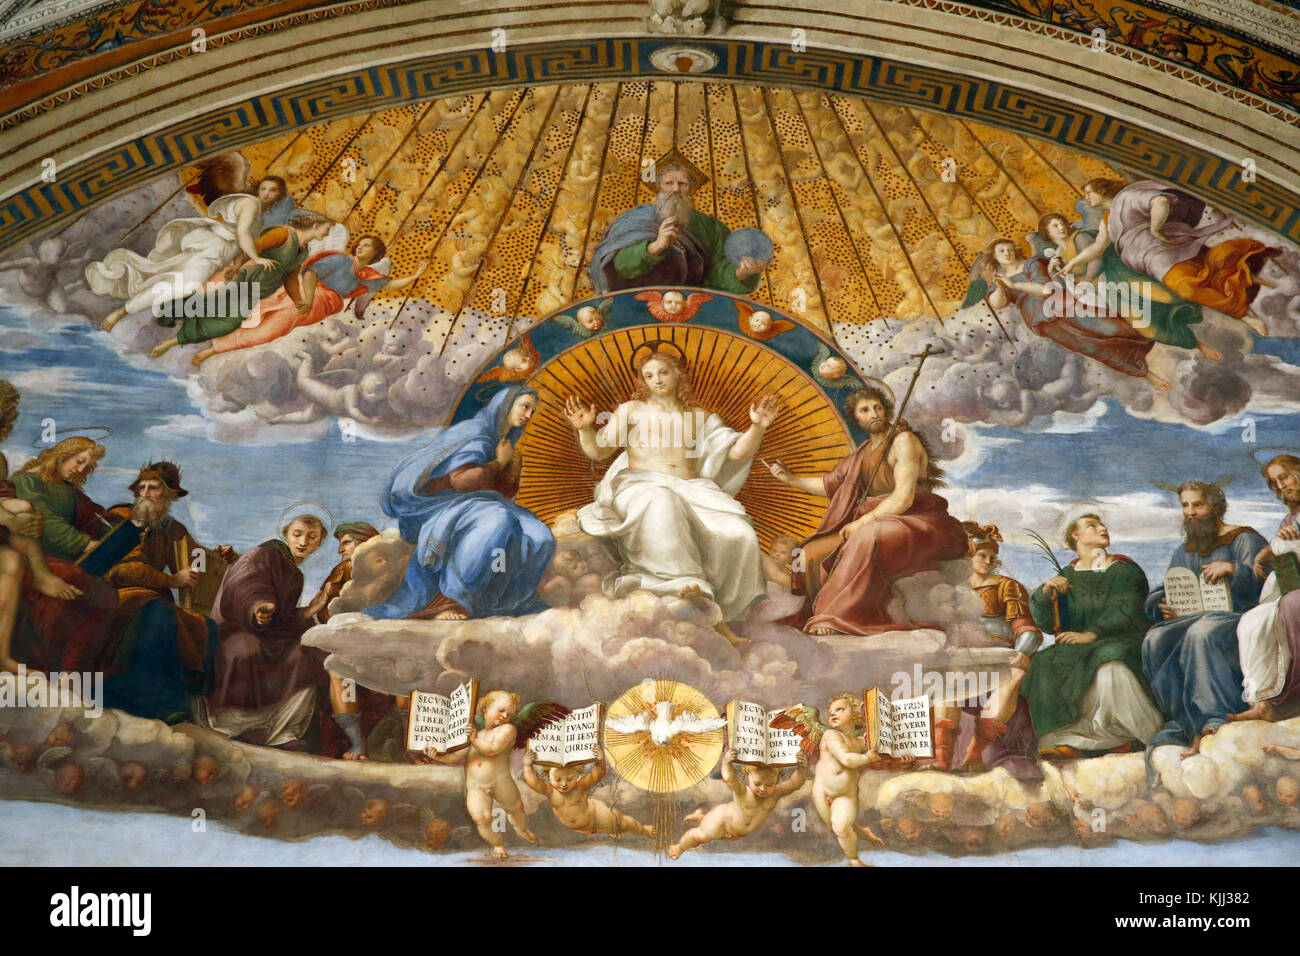 Vatican museums, Rome. Raphael's rooms. Disputation of the Holy Sacrament. Detail. Italy. - Stock Image